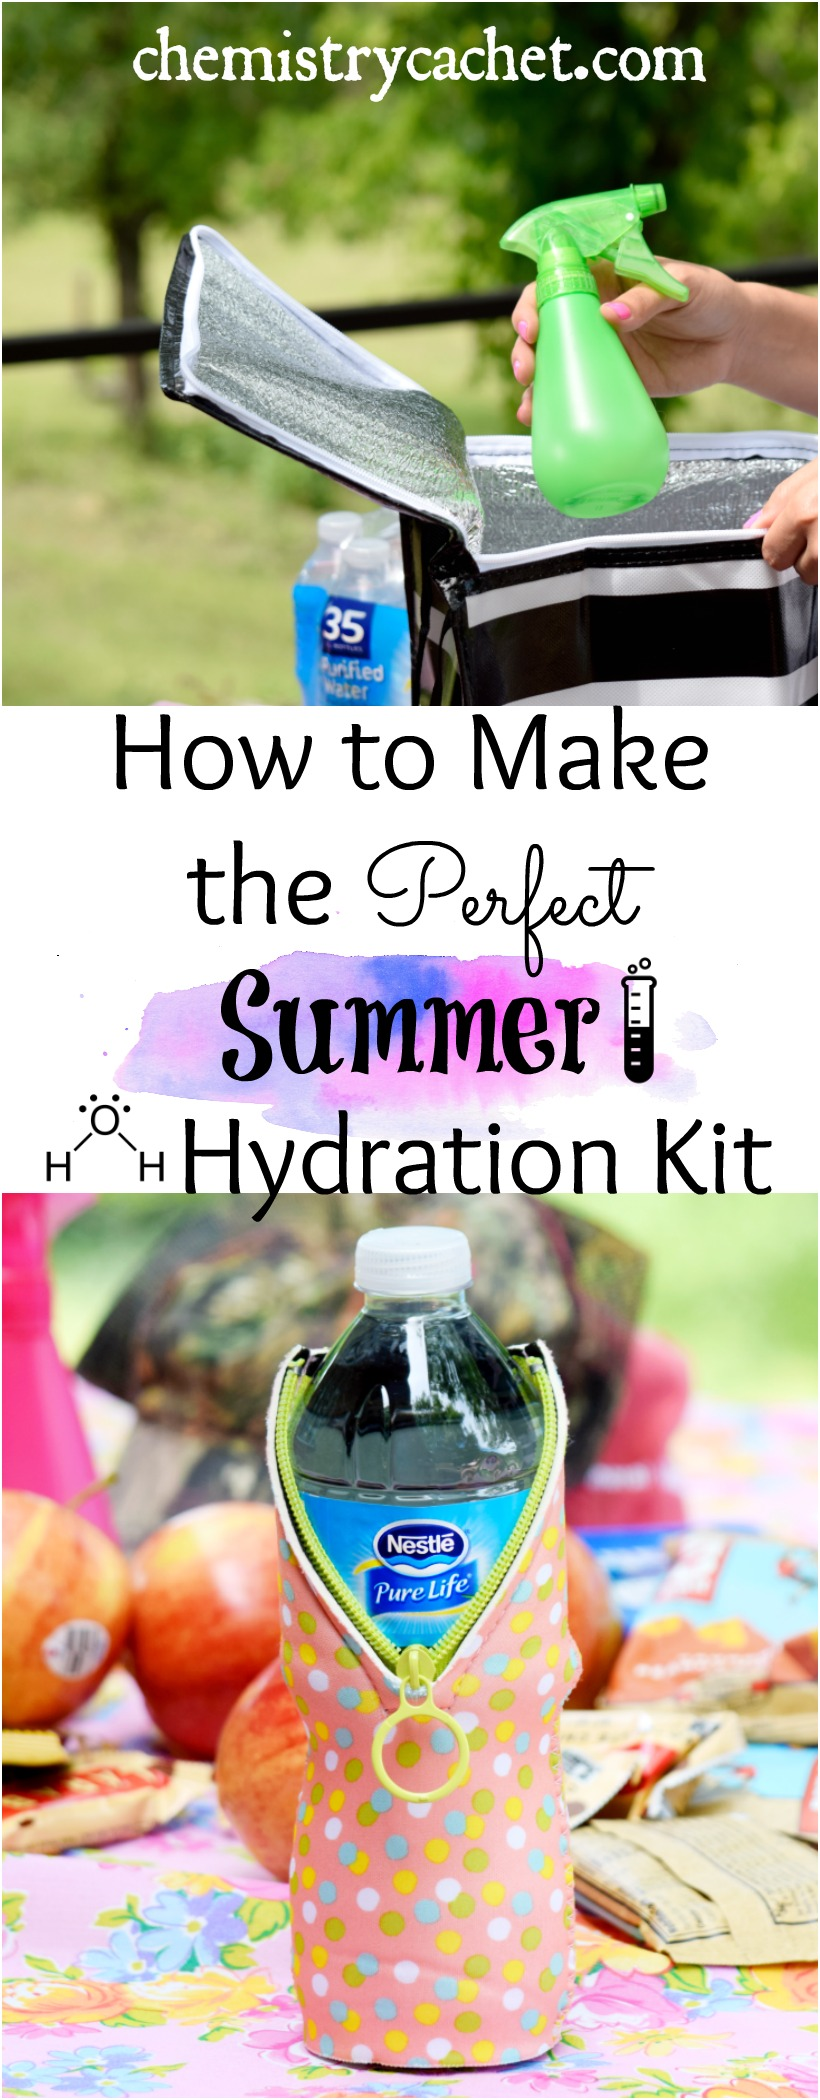 How to Make the Perfect Summer Hydration Kit #PureLife35pk #ad on chemistrycachet.com